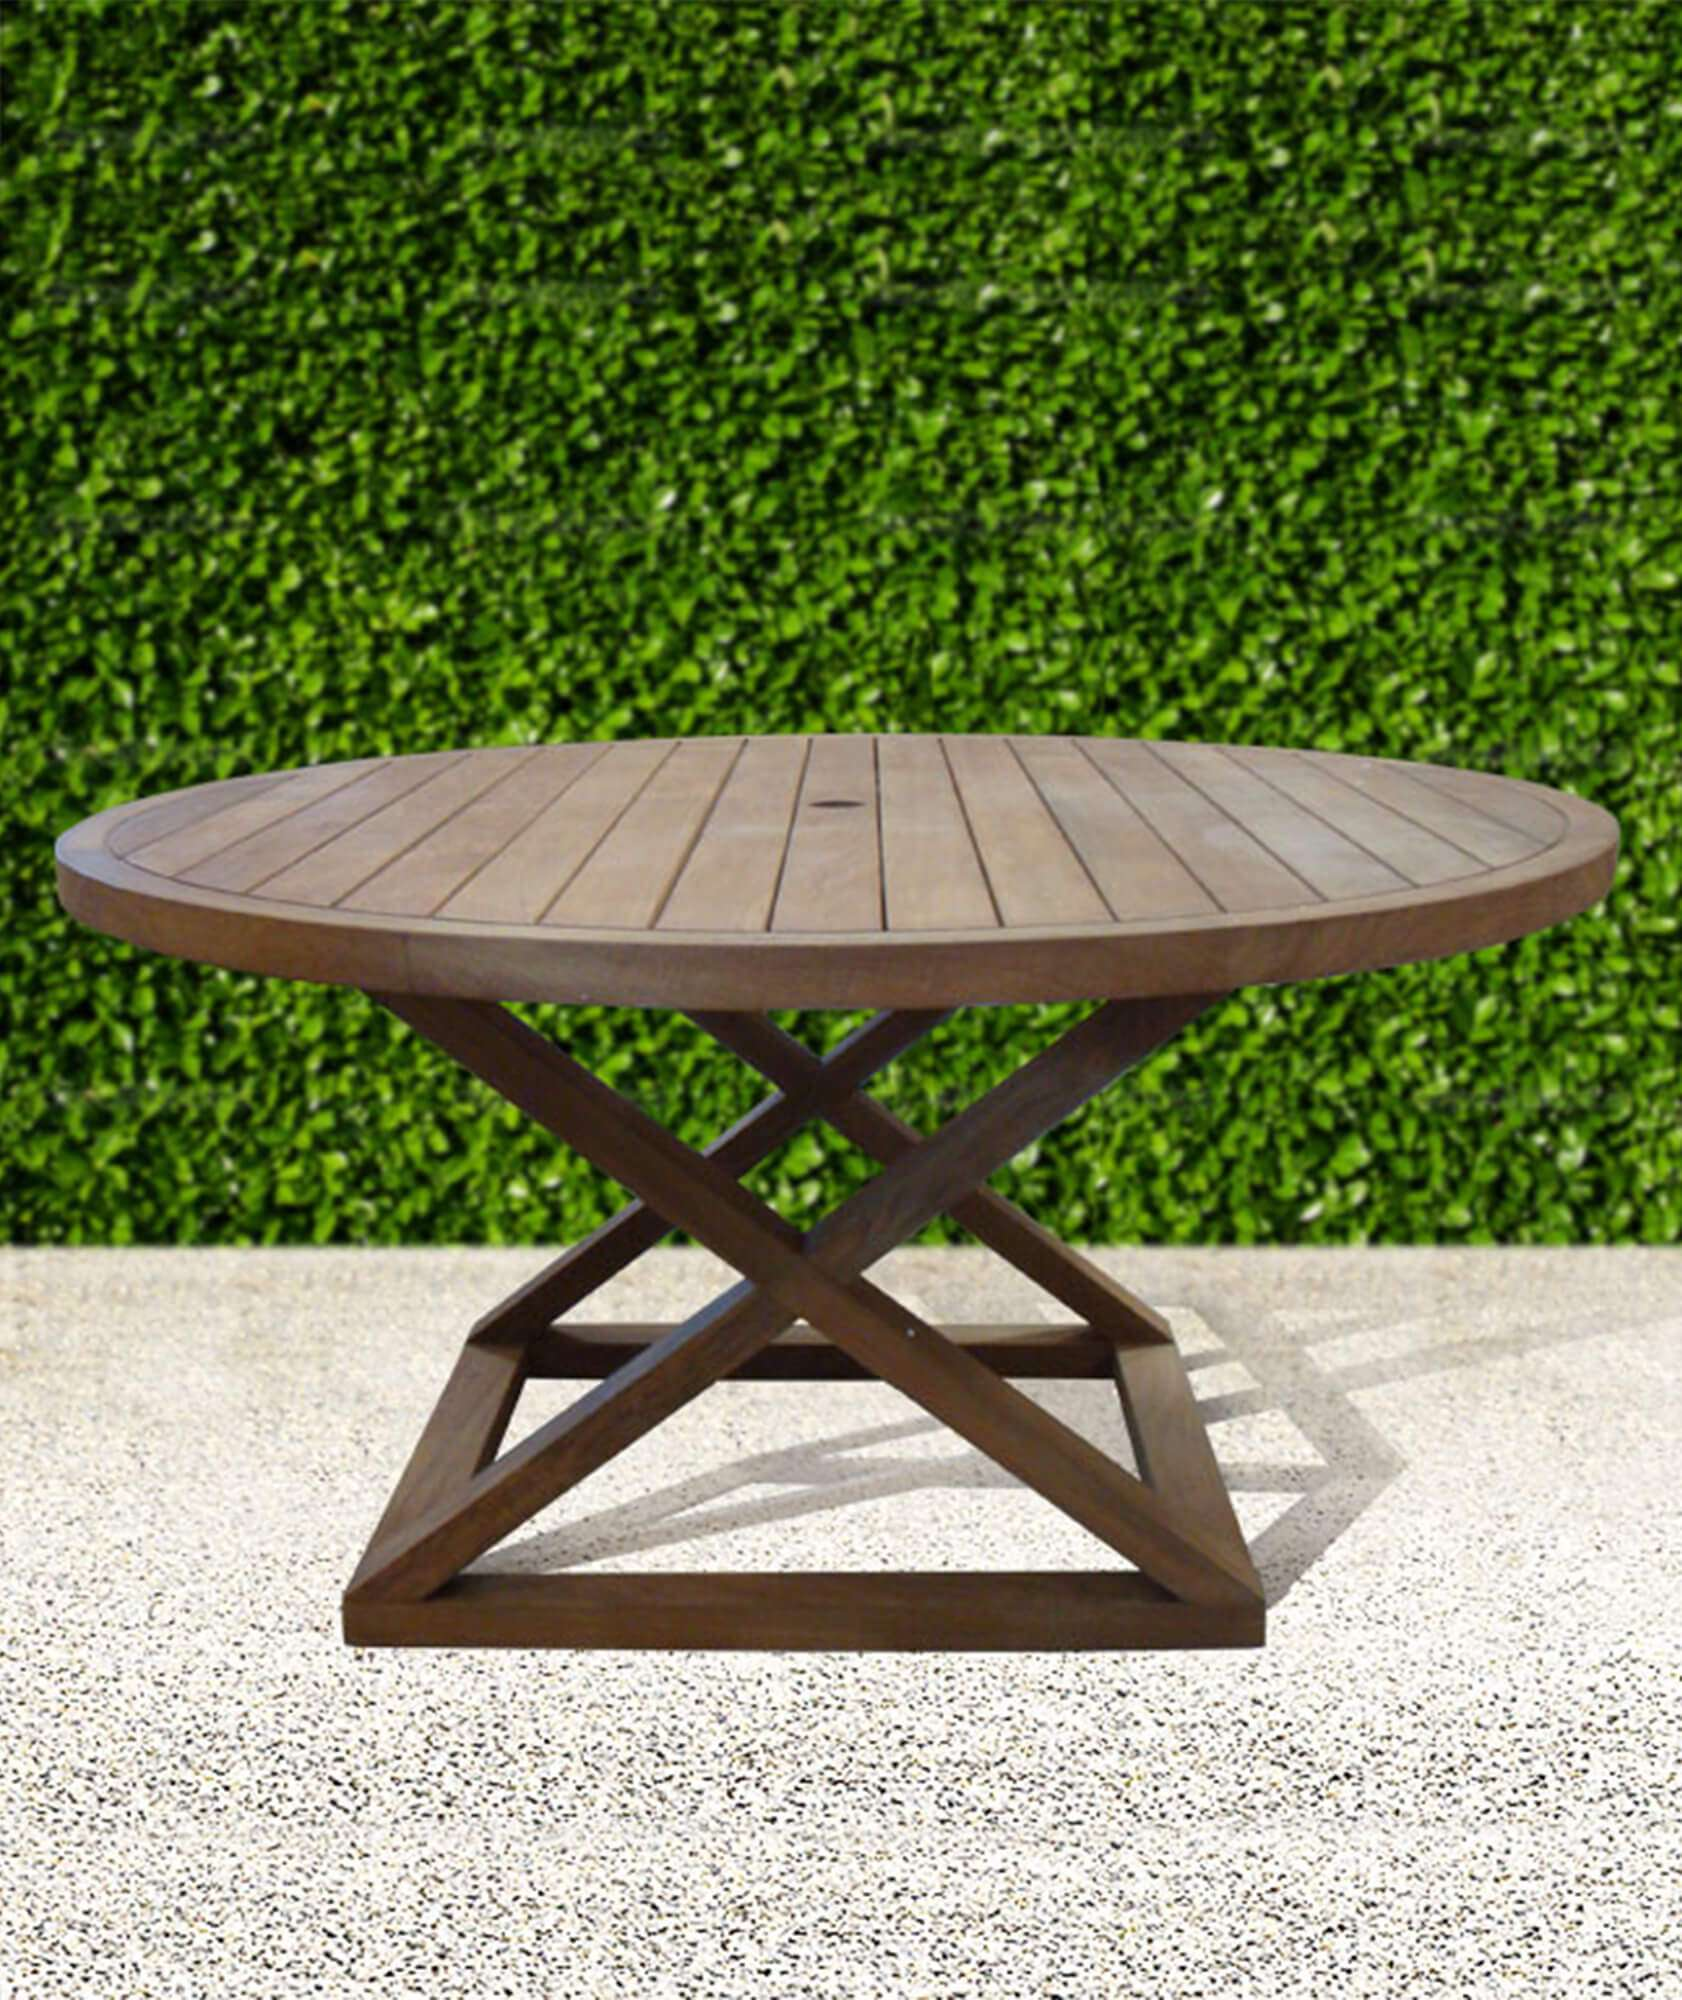 CAMPAIGN OUTDOOR DINING TABLE 2 - STUART MEMBERY HOME COLLECTION